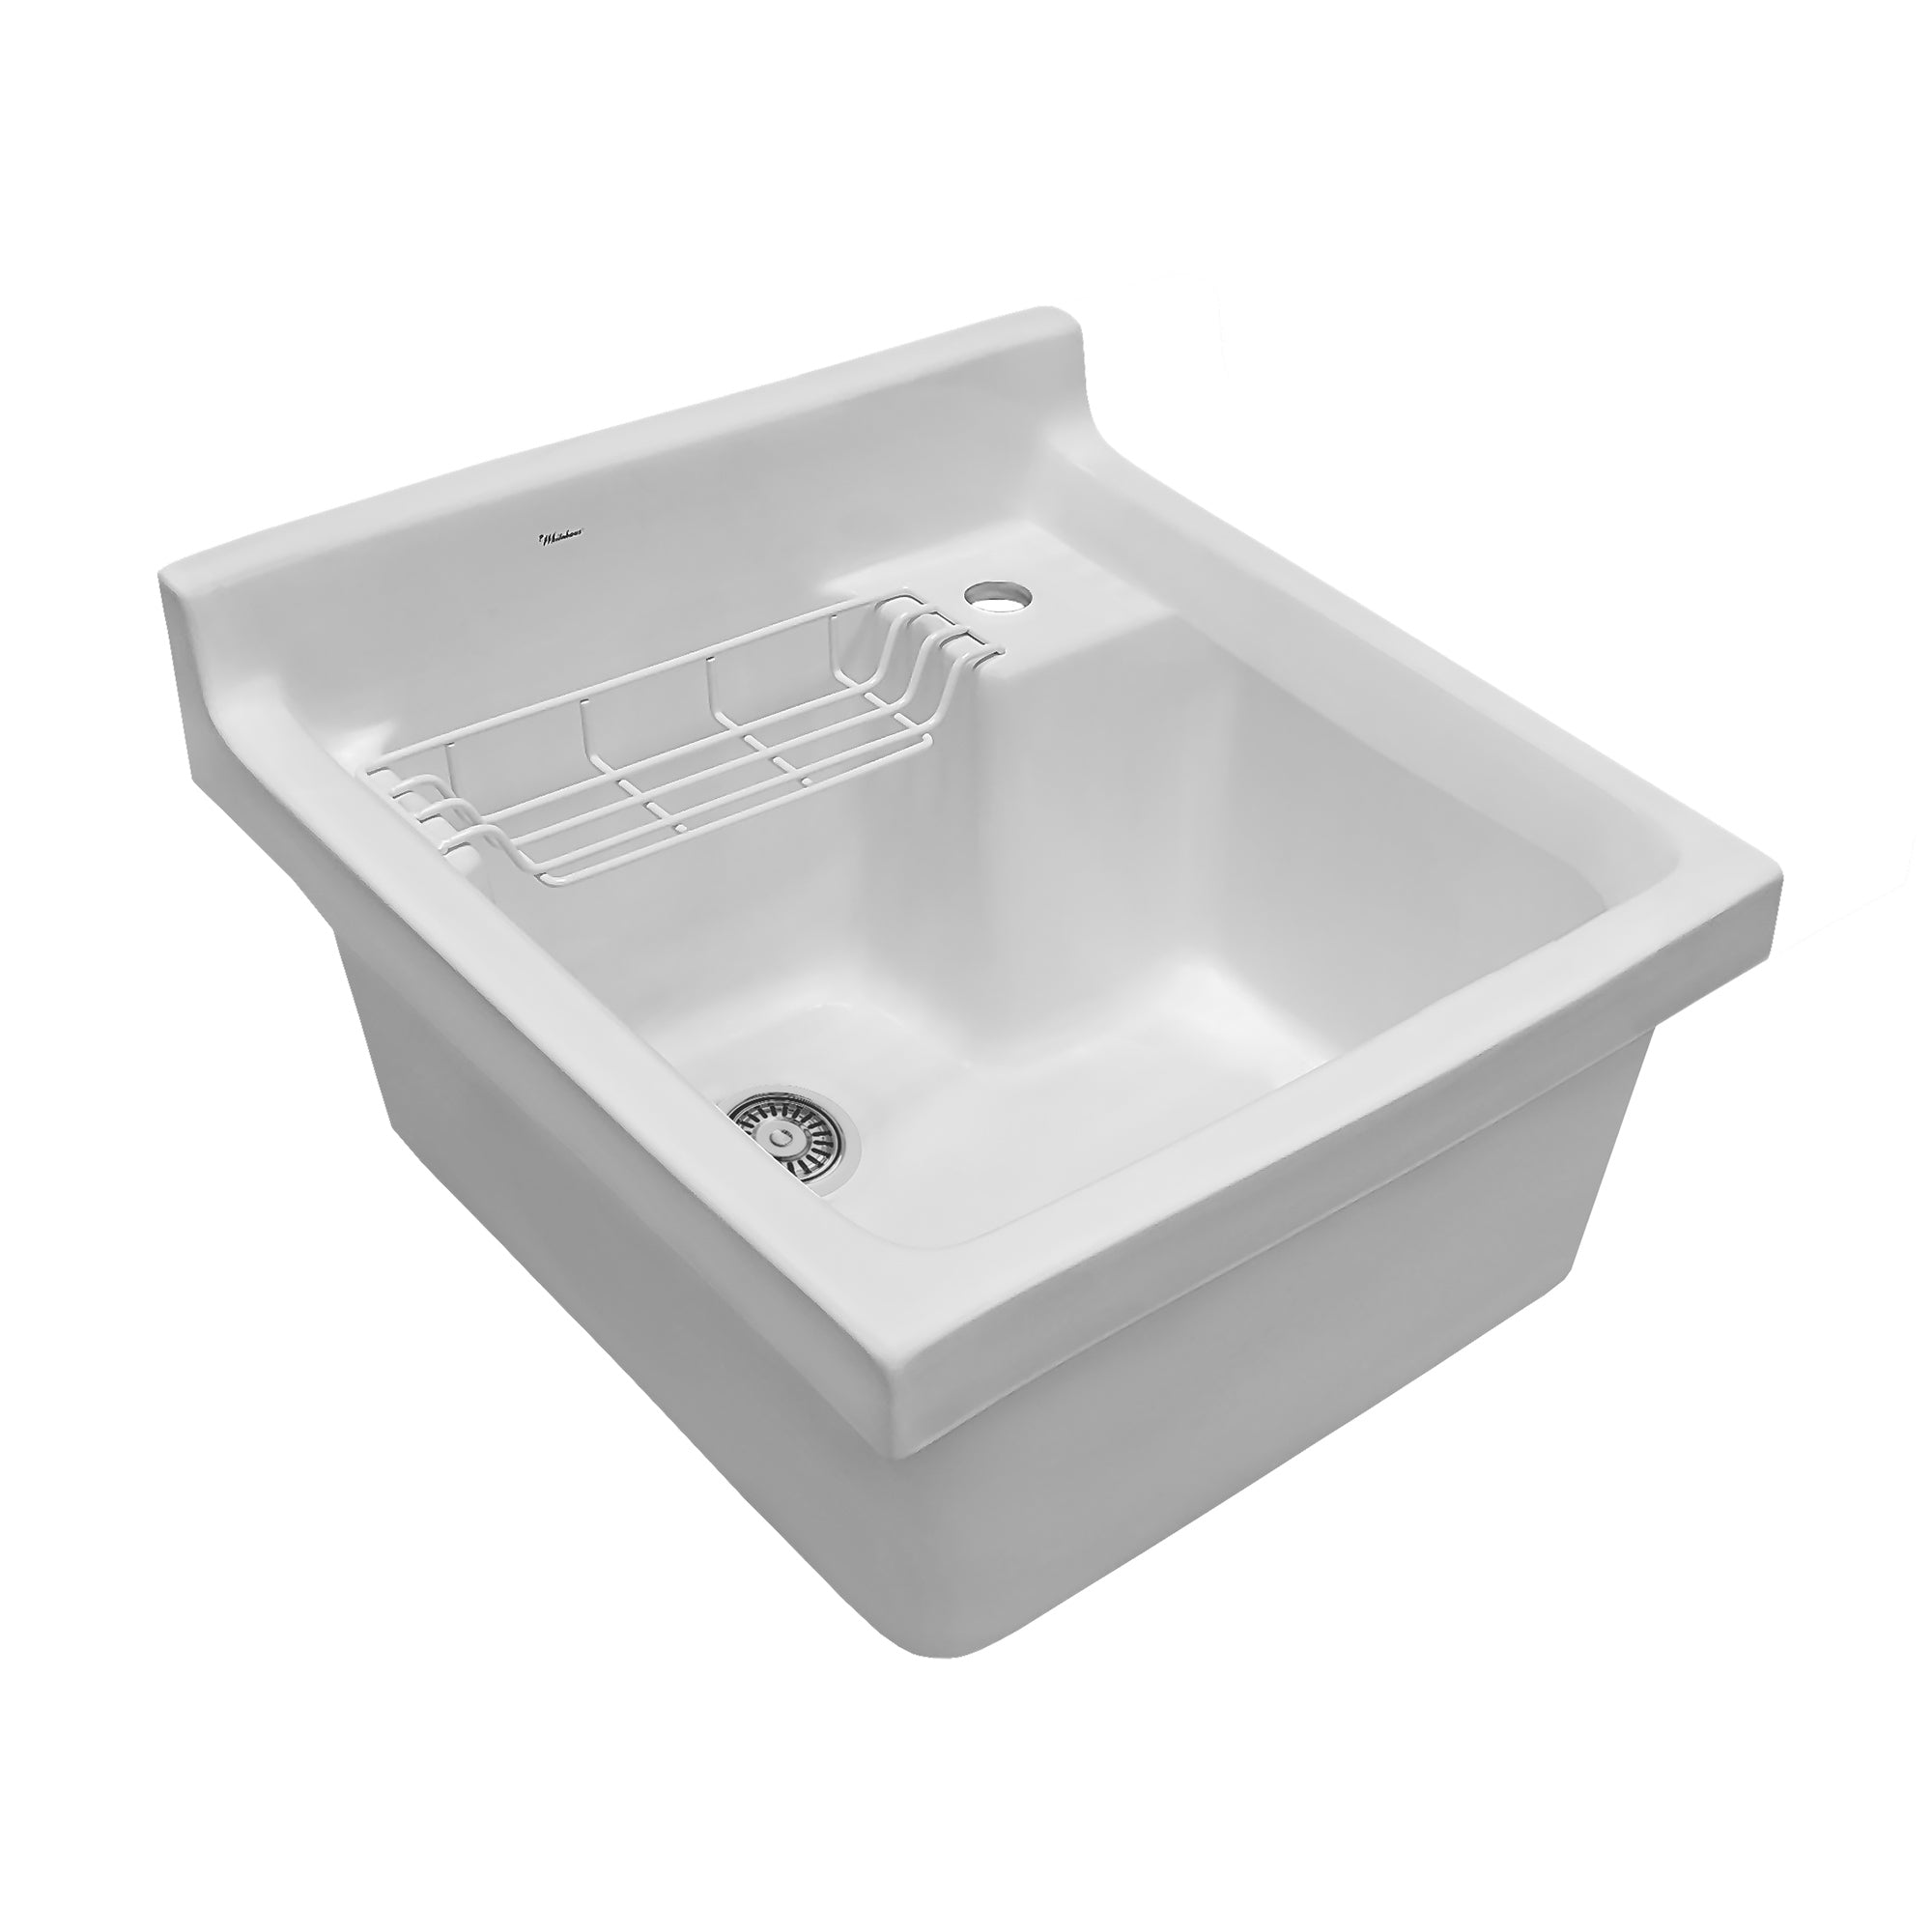 Vitreous China Single Bowl, Drop-in Sink with Wire Basket and 3 ½ Inch Off Center Drain